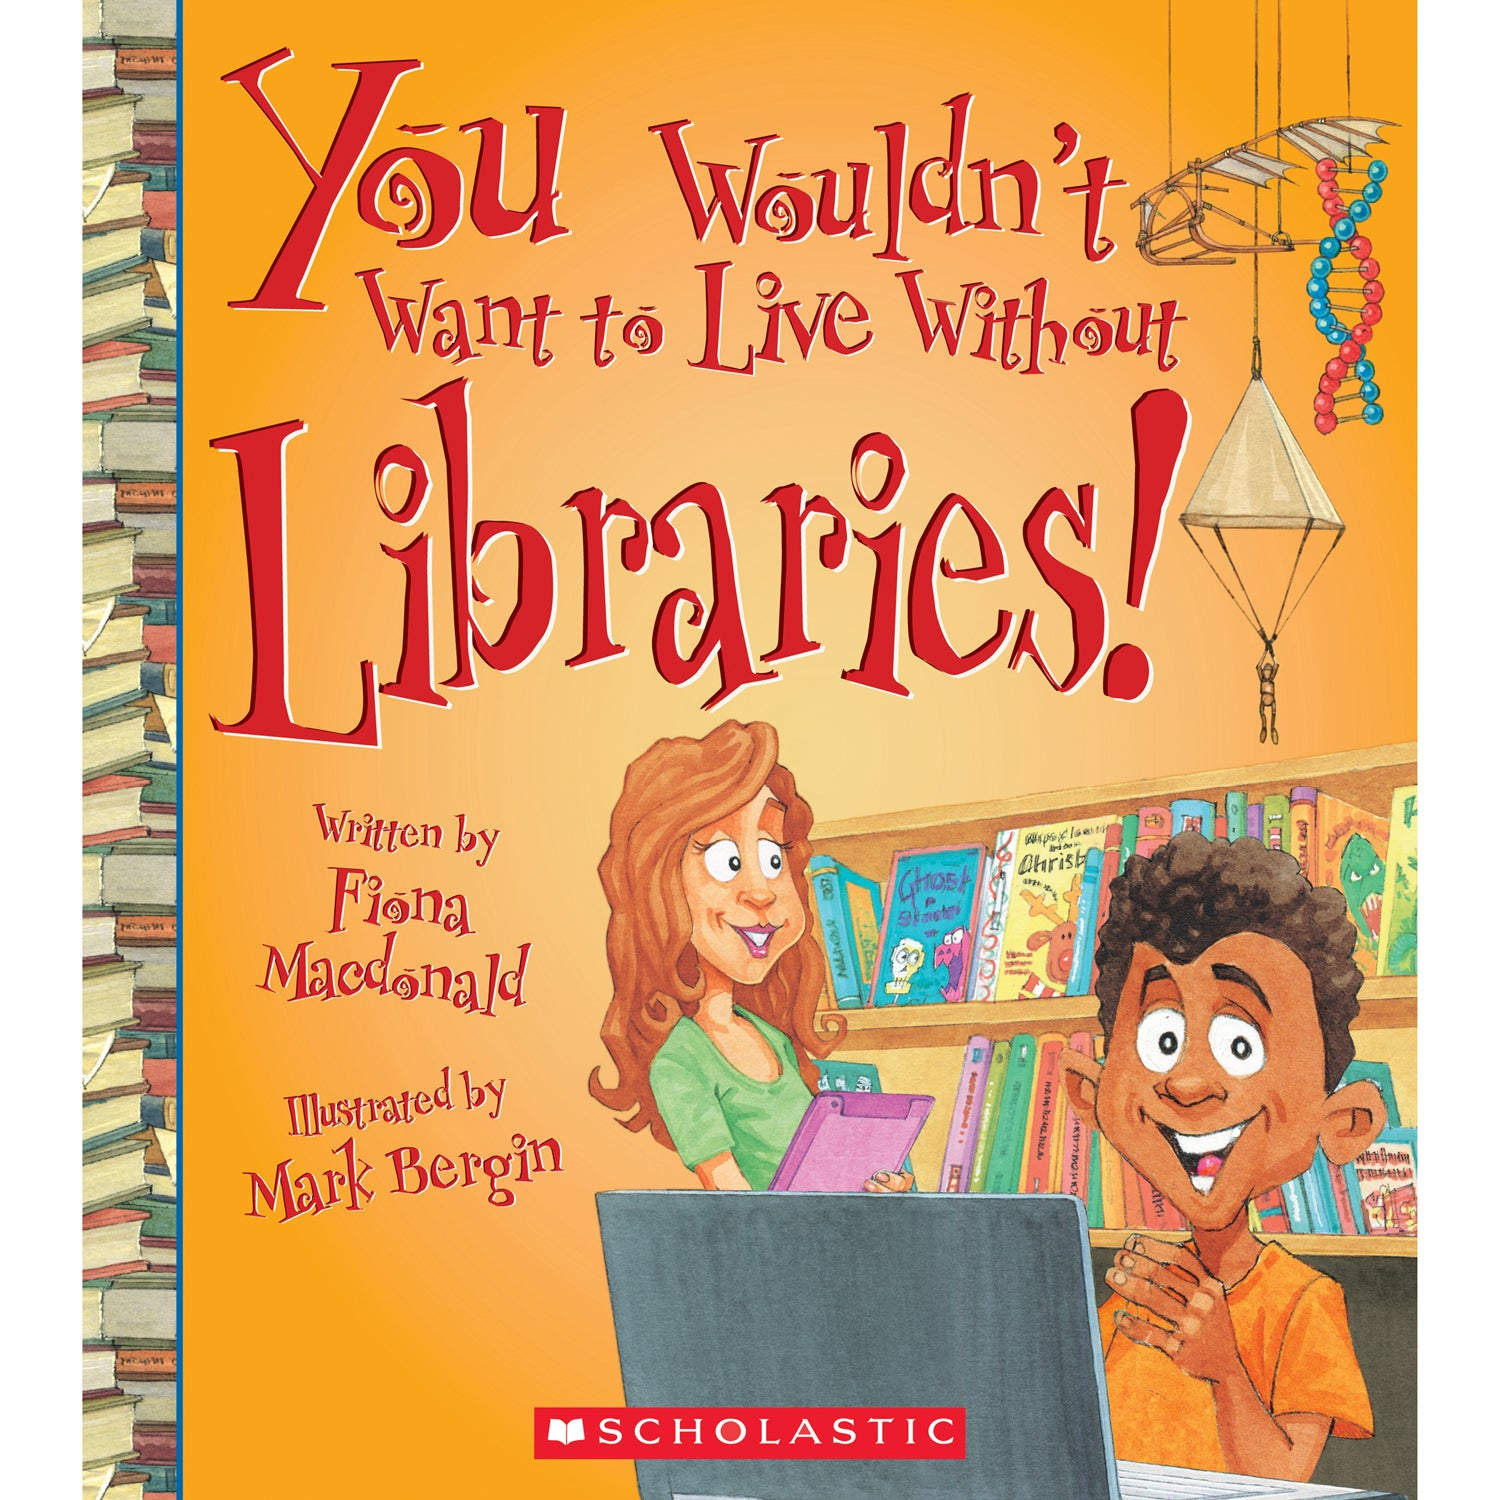 You Wouldnt Want To Live W-o Librar Book - Kiddren